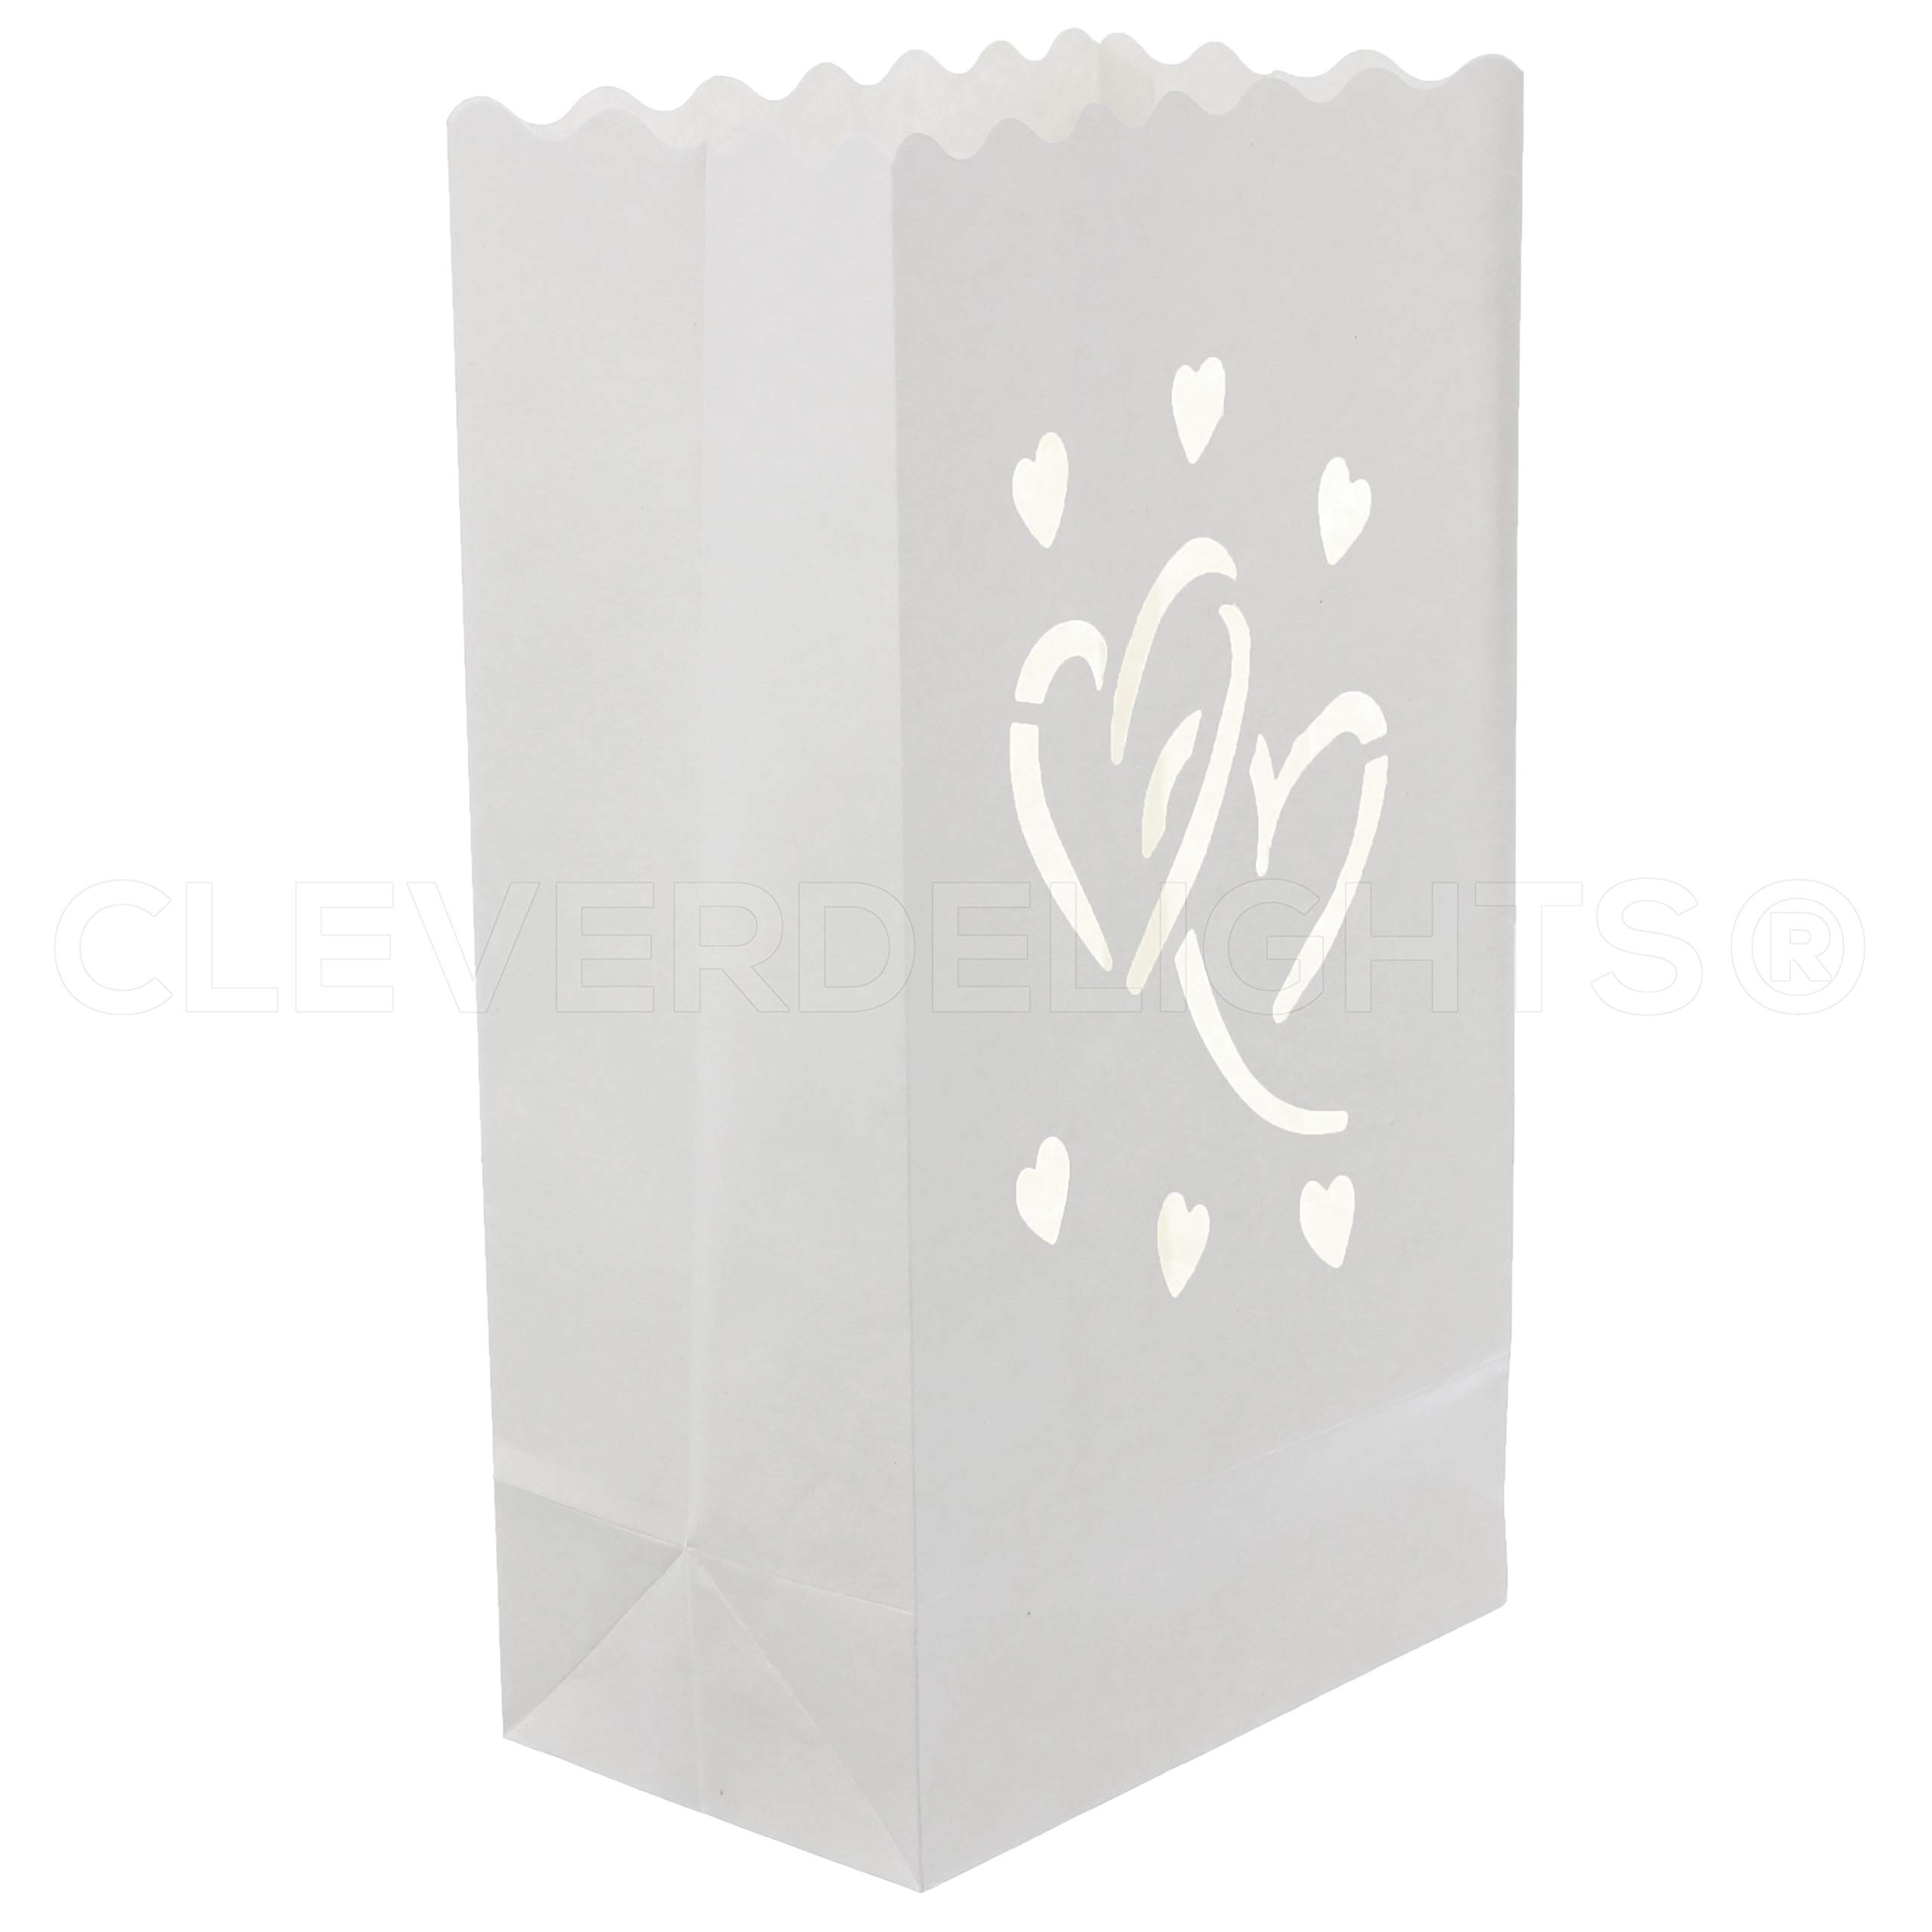 CleverDelights White Luminary Bags - 20 Count - Interlocking Hearts Design - Wedding, Reception, Party and Event Decor - Flame Resistant Paper - Luminaria by CleverDelights